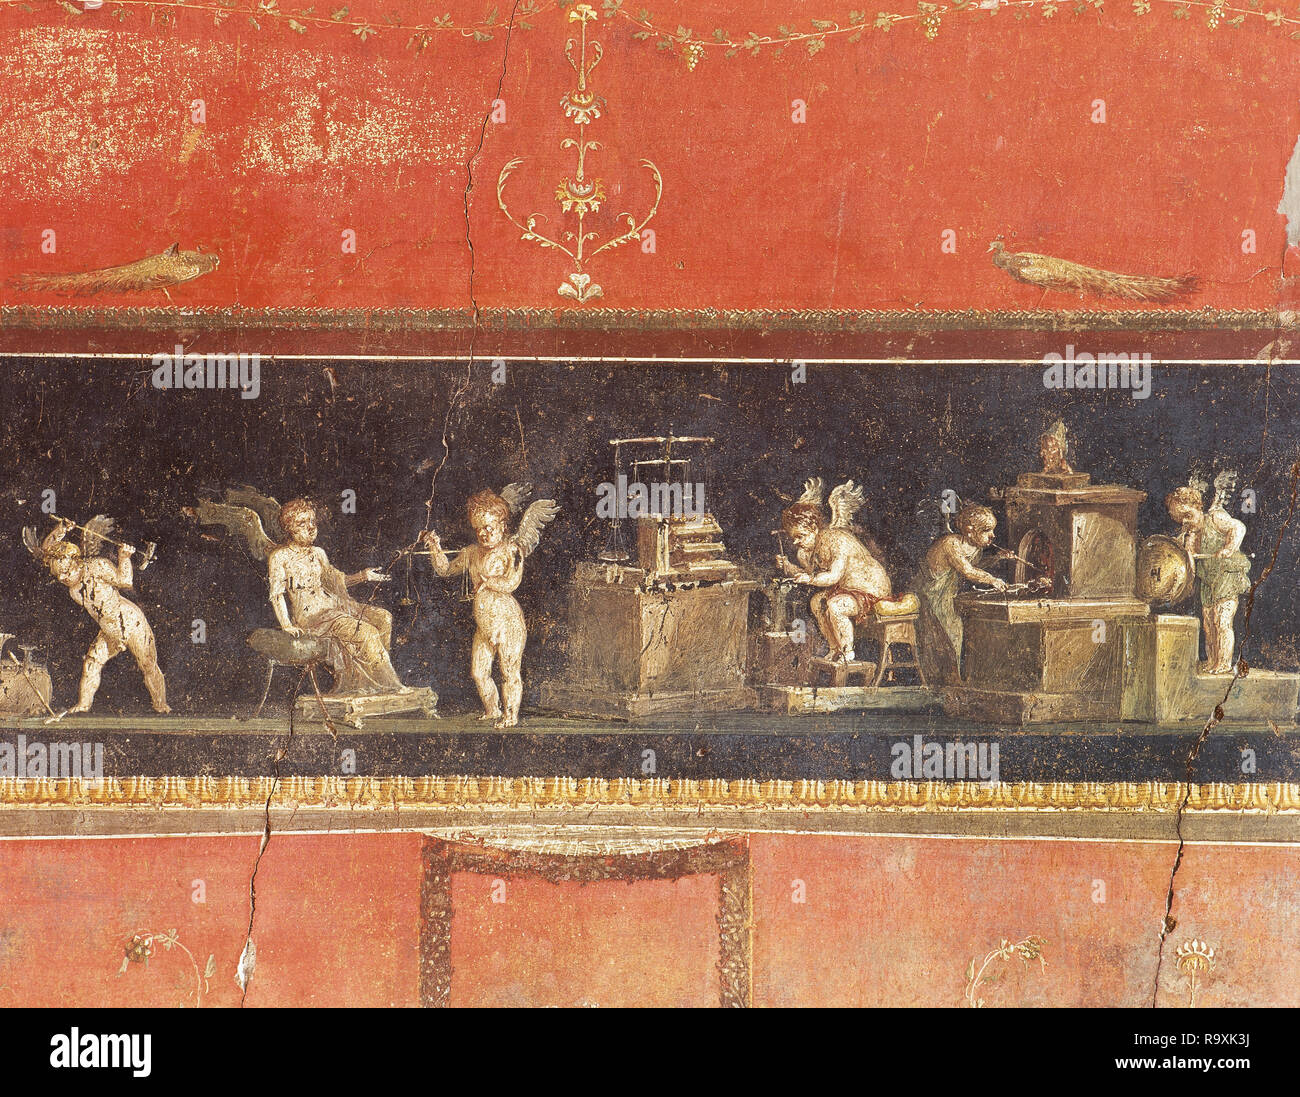 Italy. Pompeii. Triclinium of The House of the Vettii. Frieze of the Cupids or Cherubs. Painting of Cupids doing goldsmith work. 1st century AD. Campania. - Stock Image